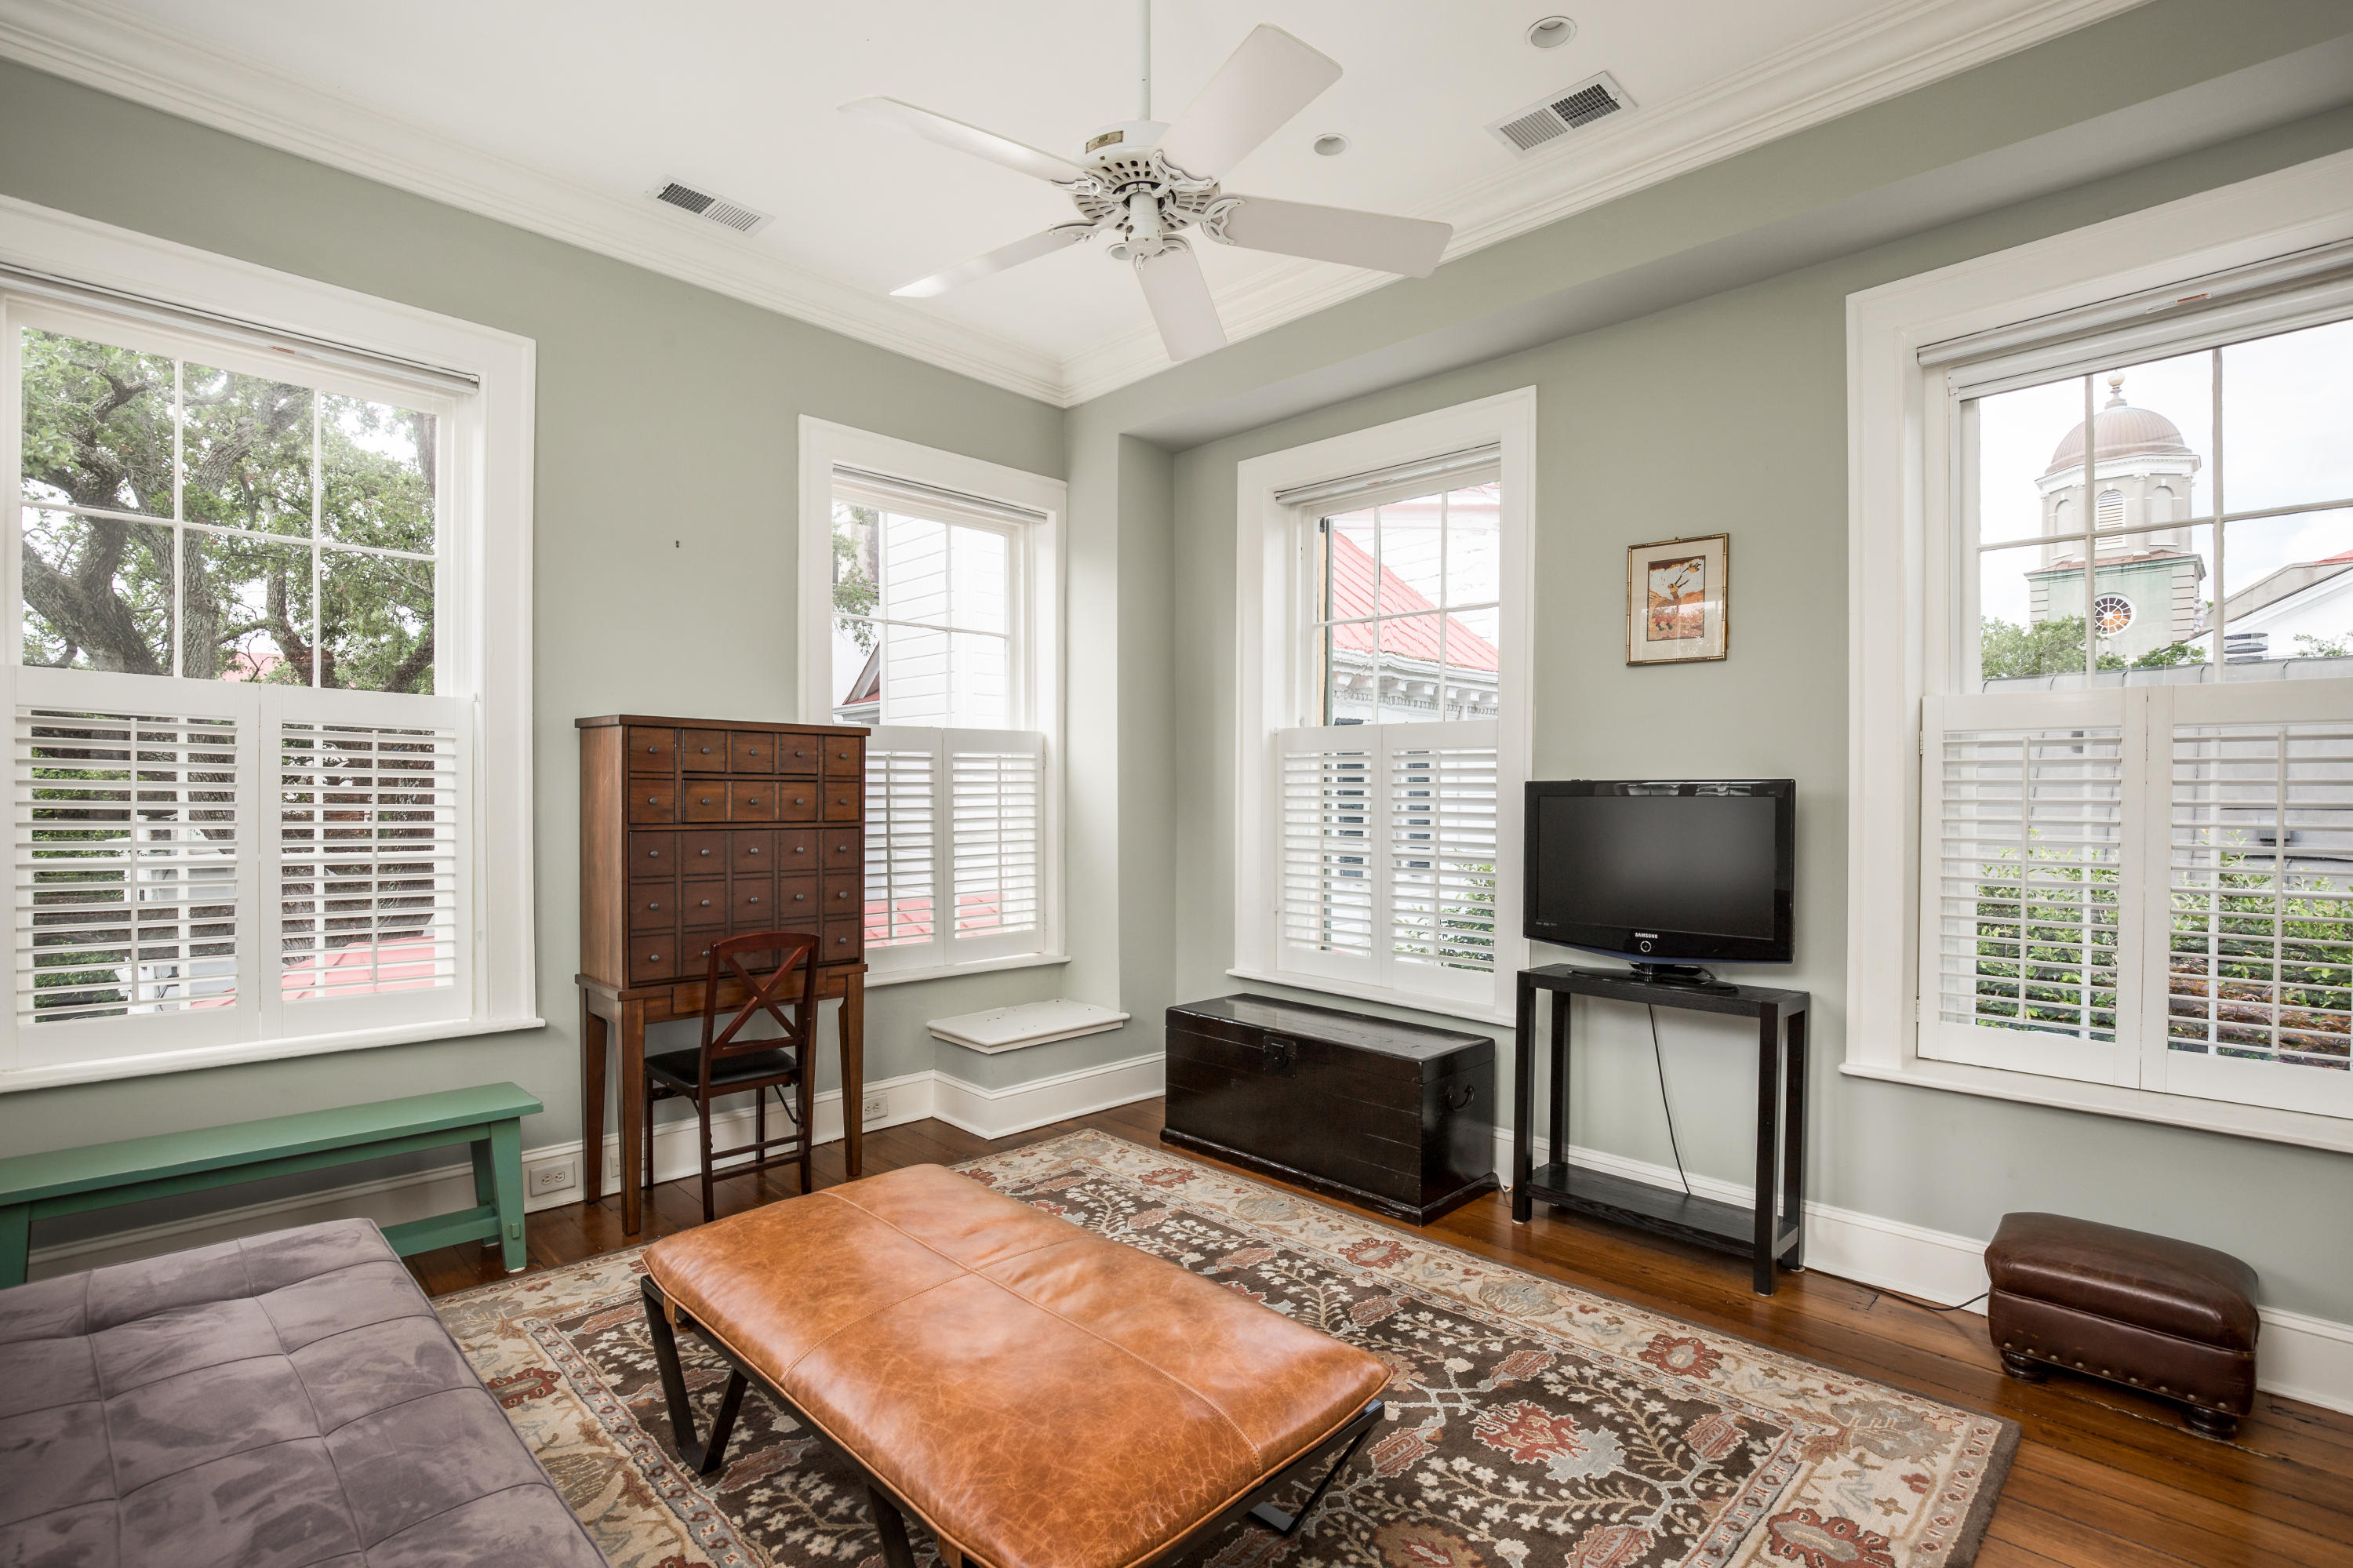 South of Broad Homes For Sale - 61 1/2 Tradd, Charleston, SC - 7